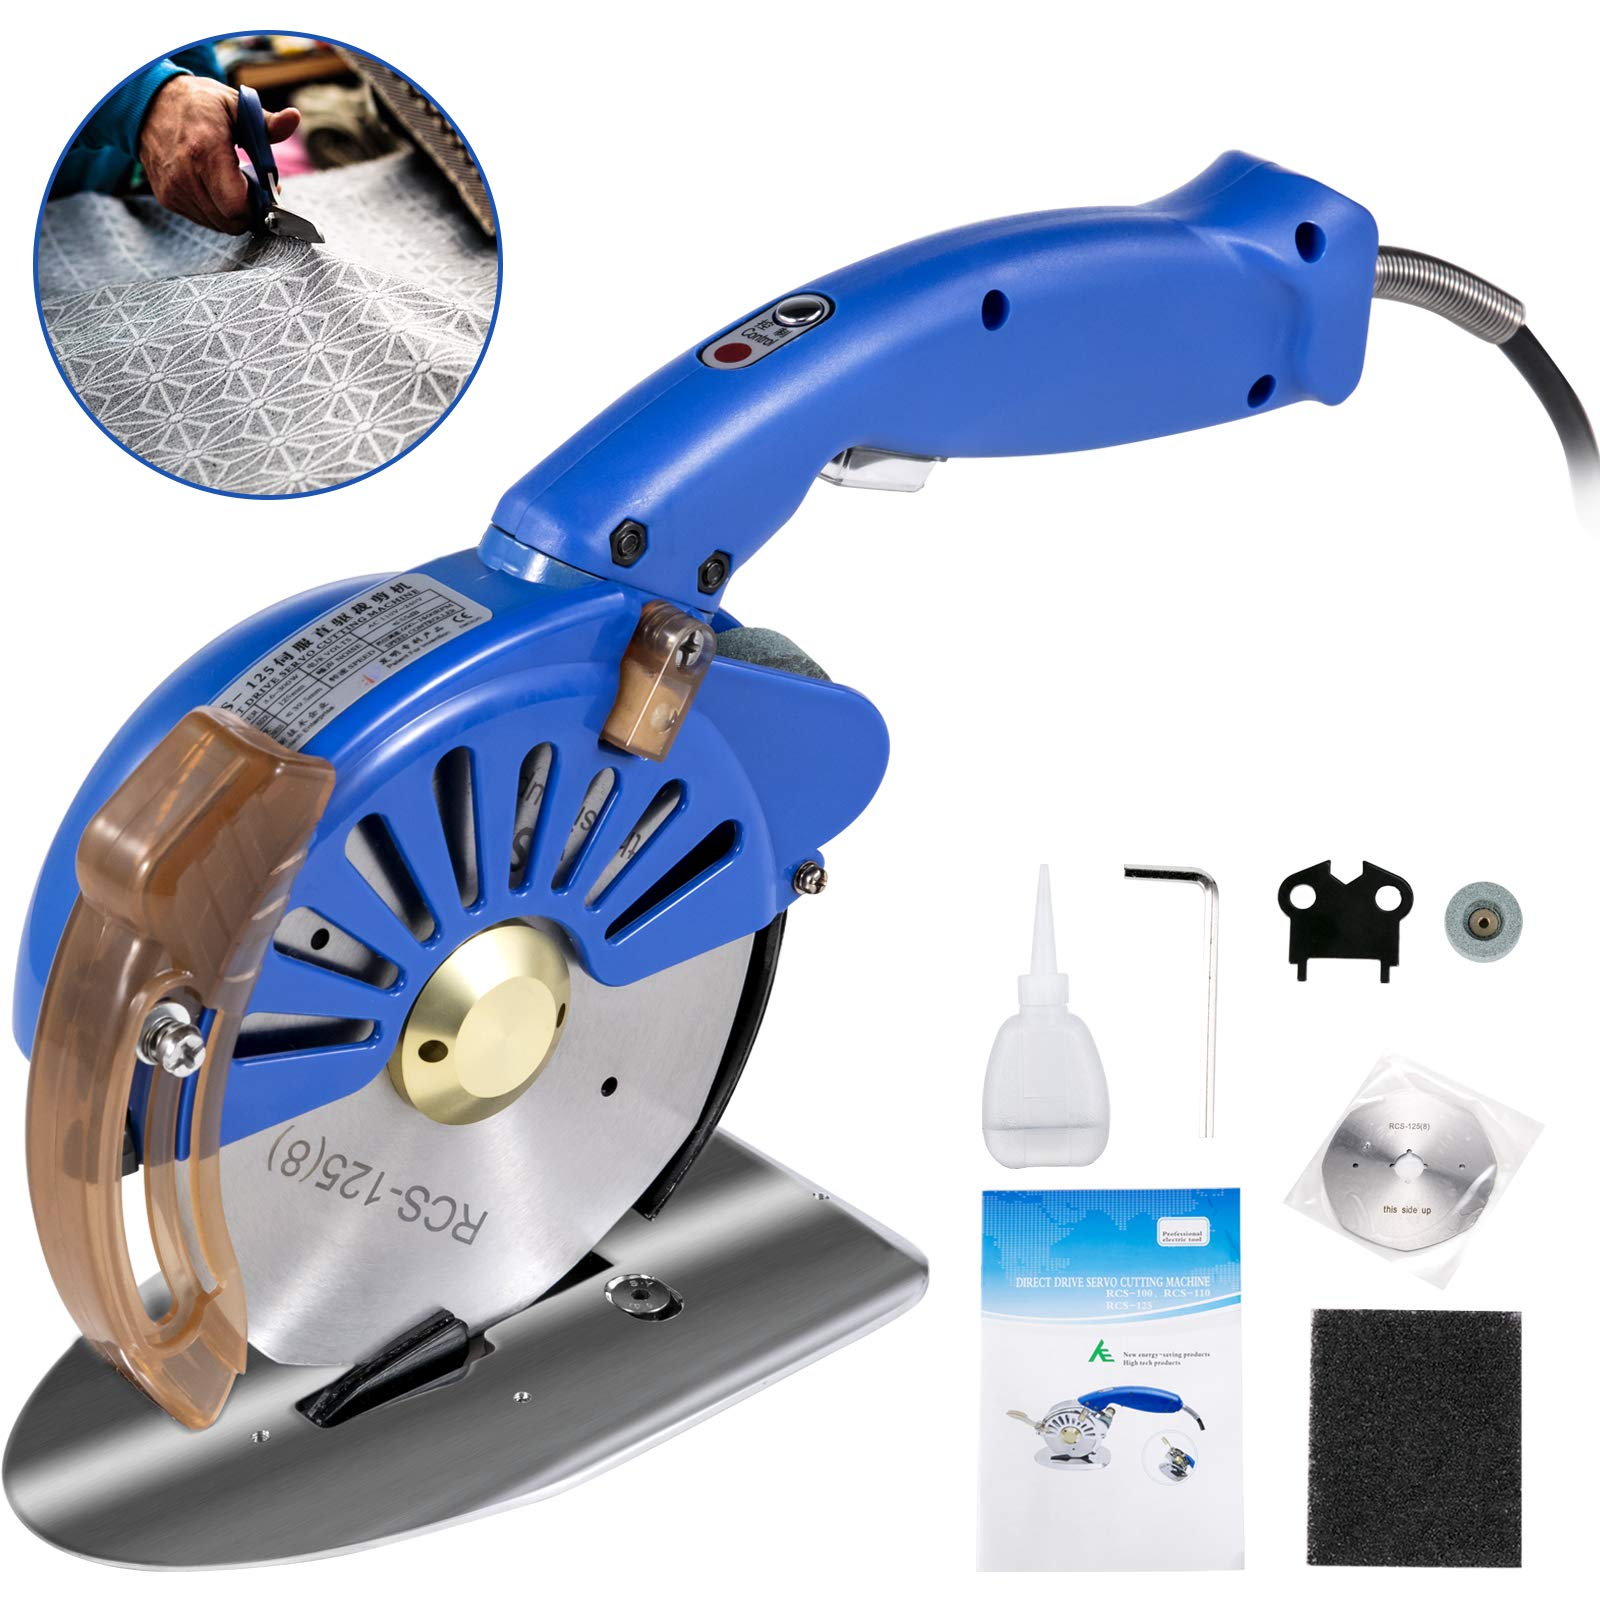 VEVOR Fabric Cutter 125mm Rotary Fabric Cutter 39mm Cutting Height Blue Electric Rotary Cutter All-Copper Motor with Low Noise Adjustable Speed Electric Scissors for Cutting Fabric and Leather